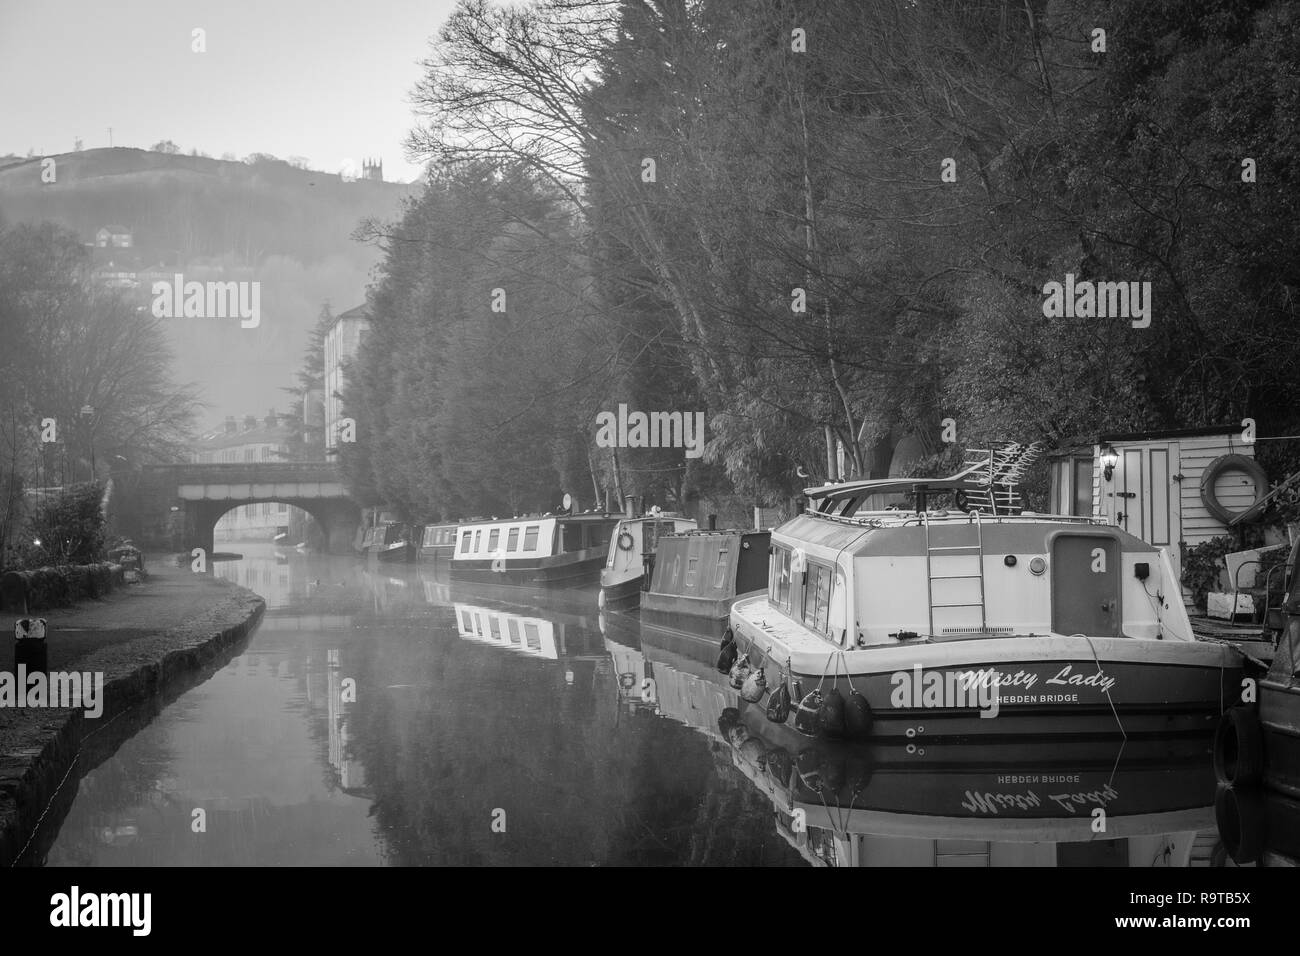 The Rochdale Canal, Hebden Bridge, Calderdale, West Yorkshire, England, UK. - Stock Image